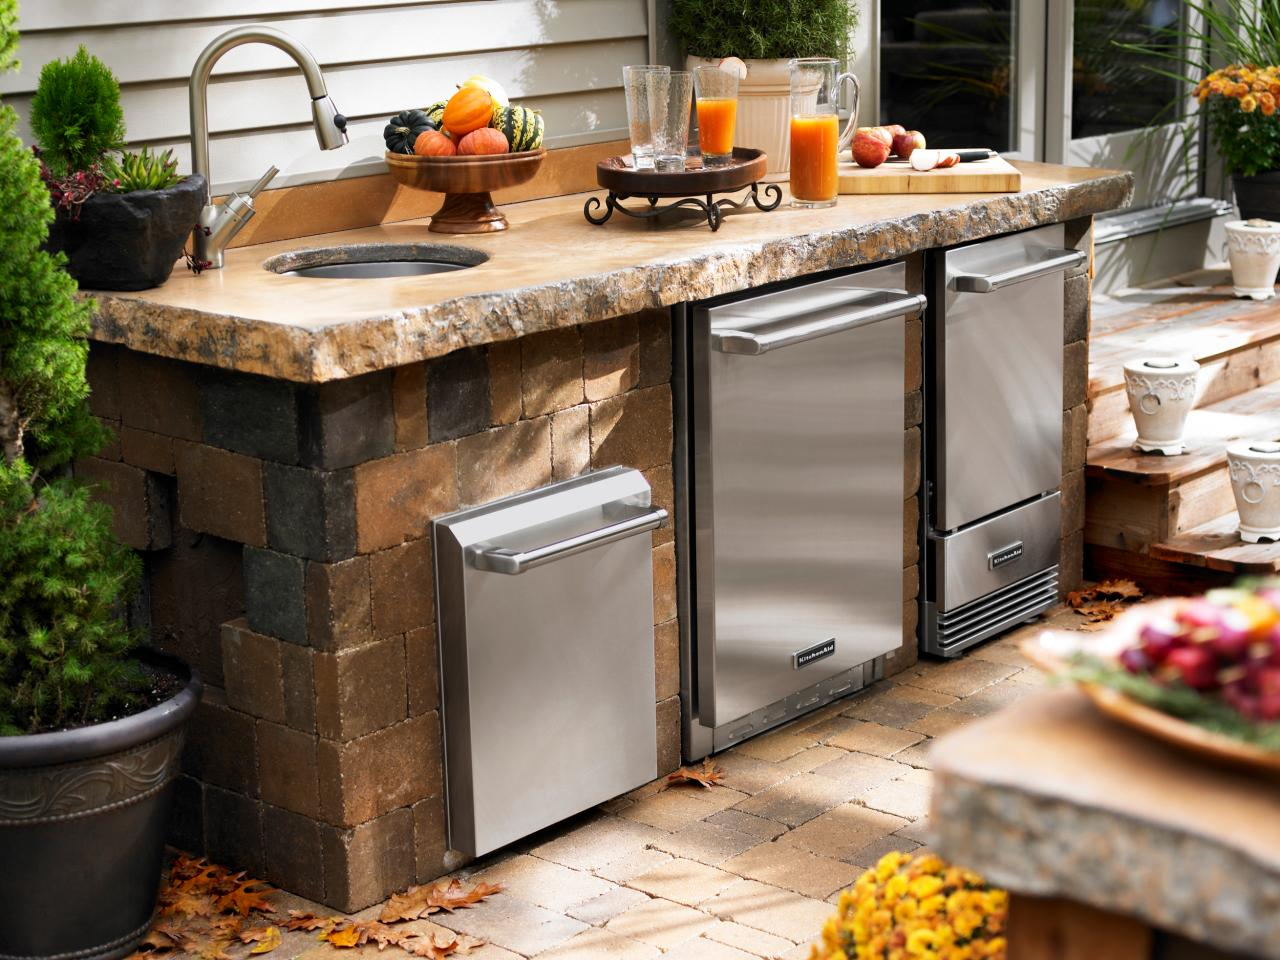 Charcoal Vs Gas Outdoor Grills HGTV - Outdoor kitchen designs with smoker